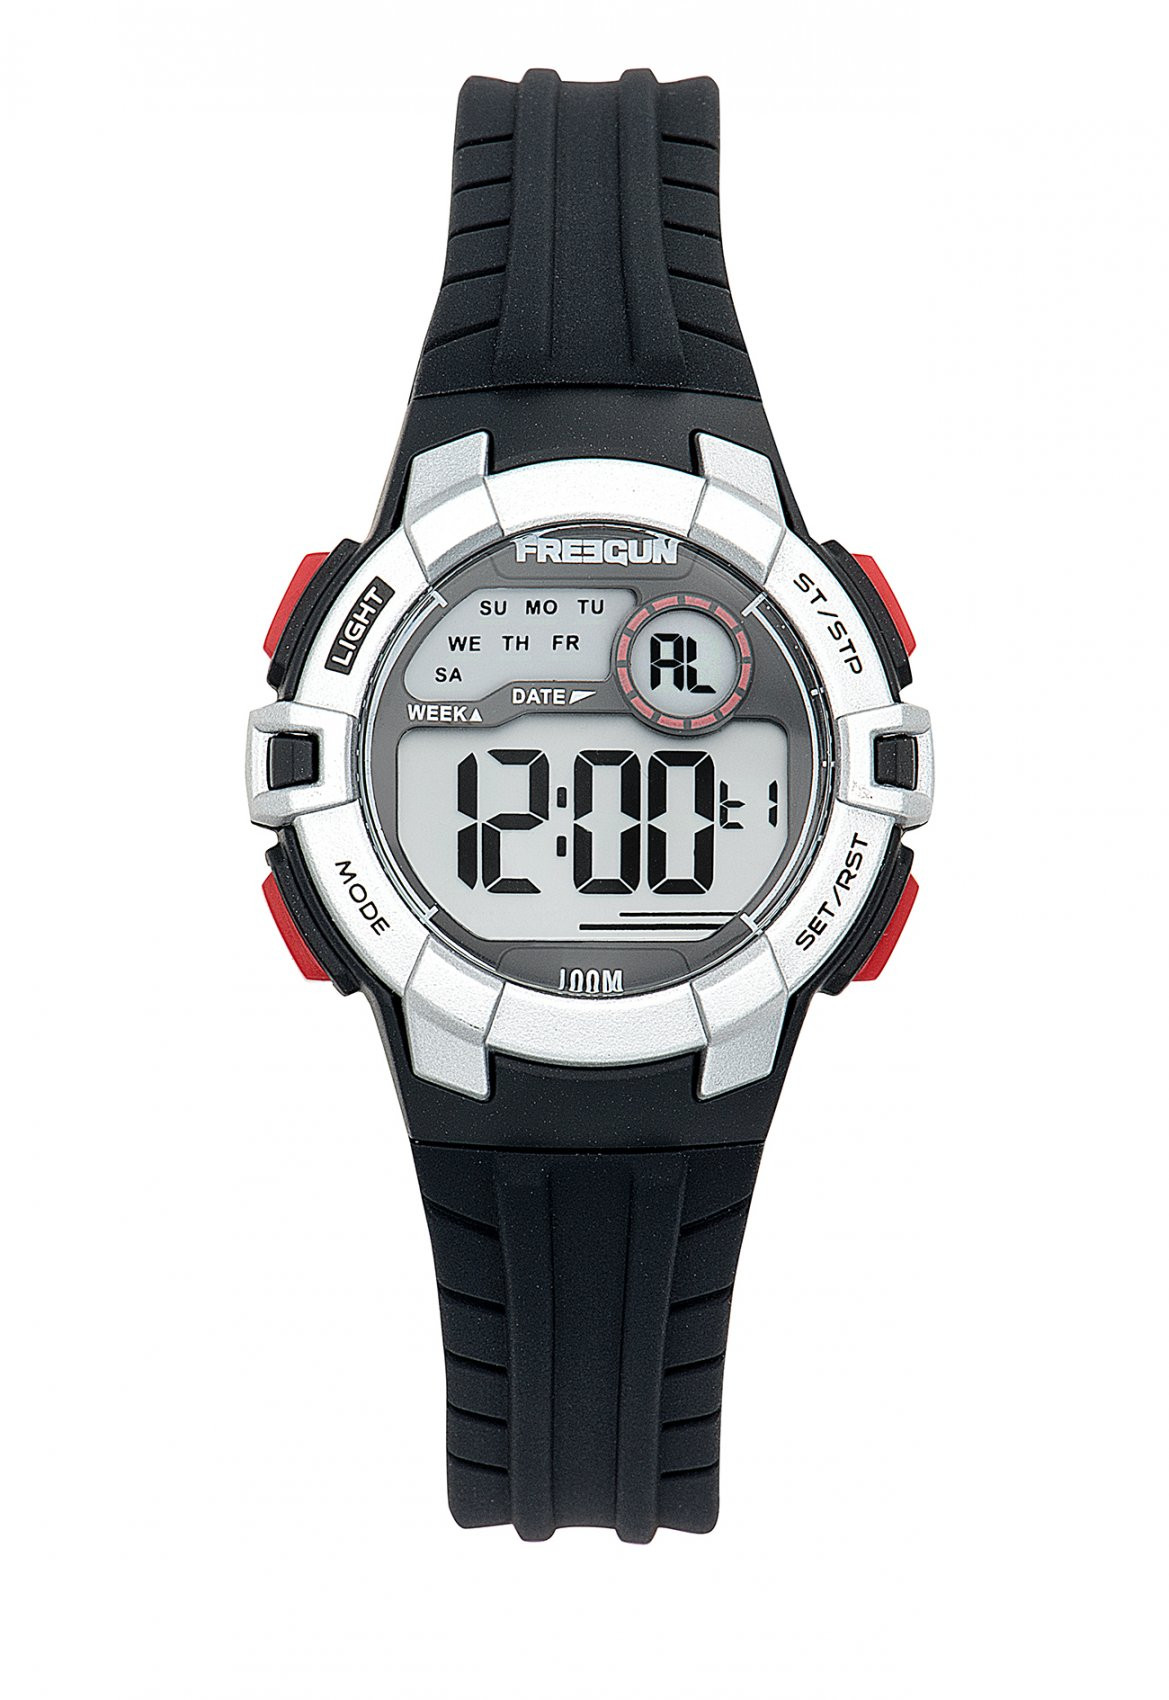 Montre apex freegun (photo)